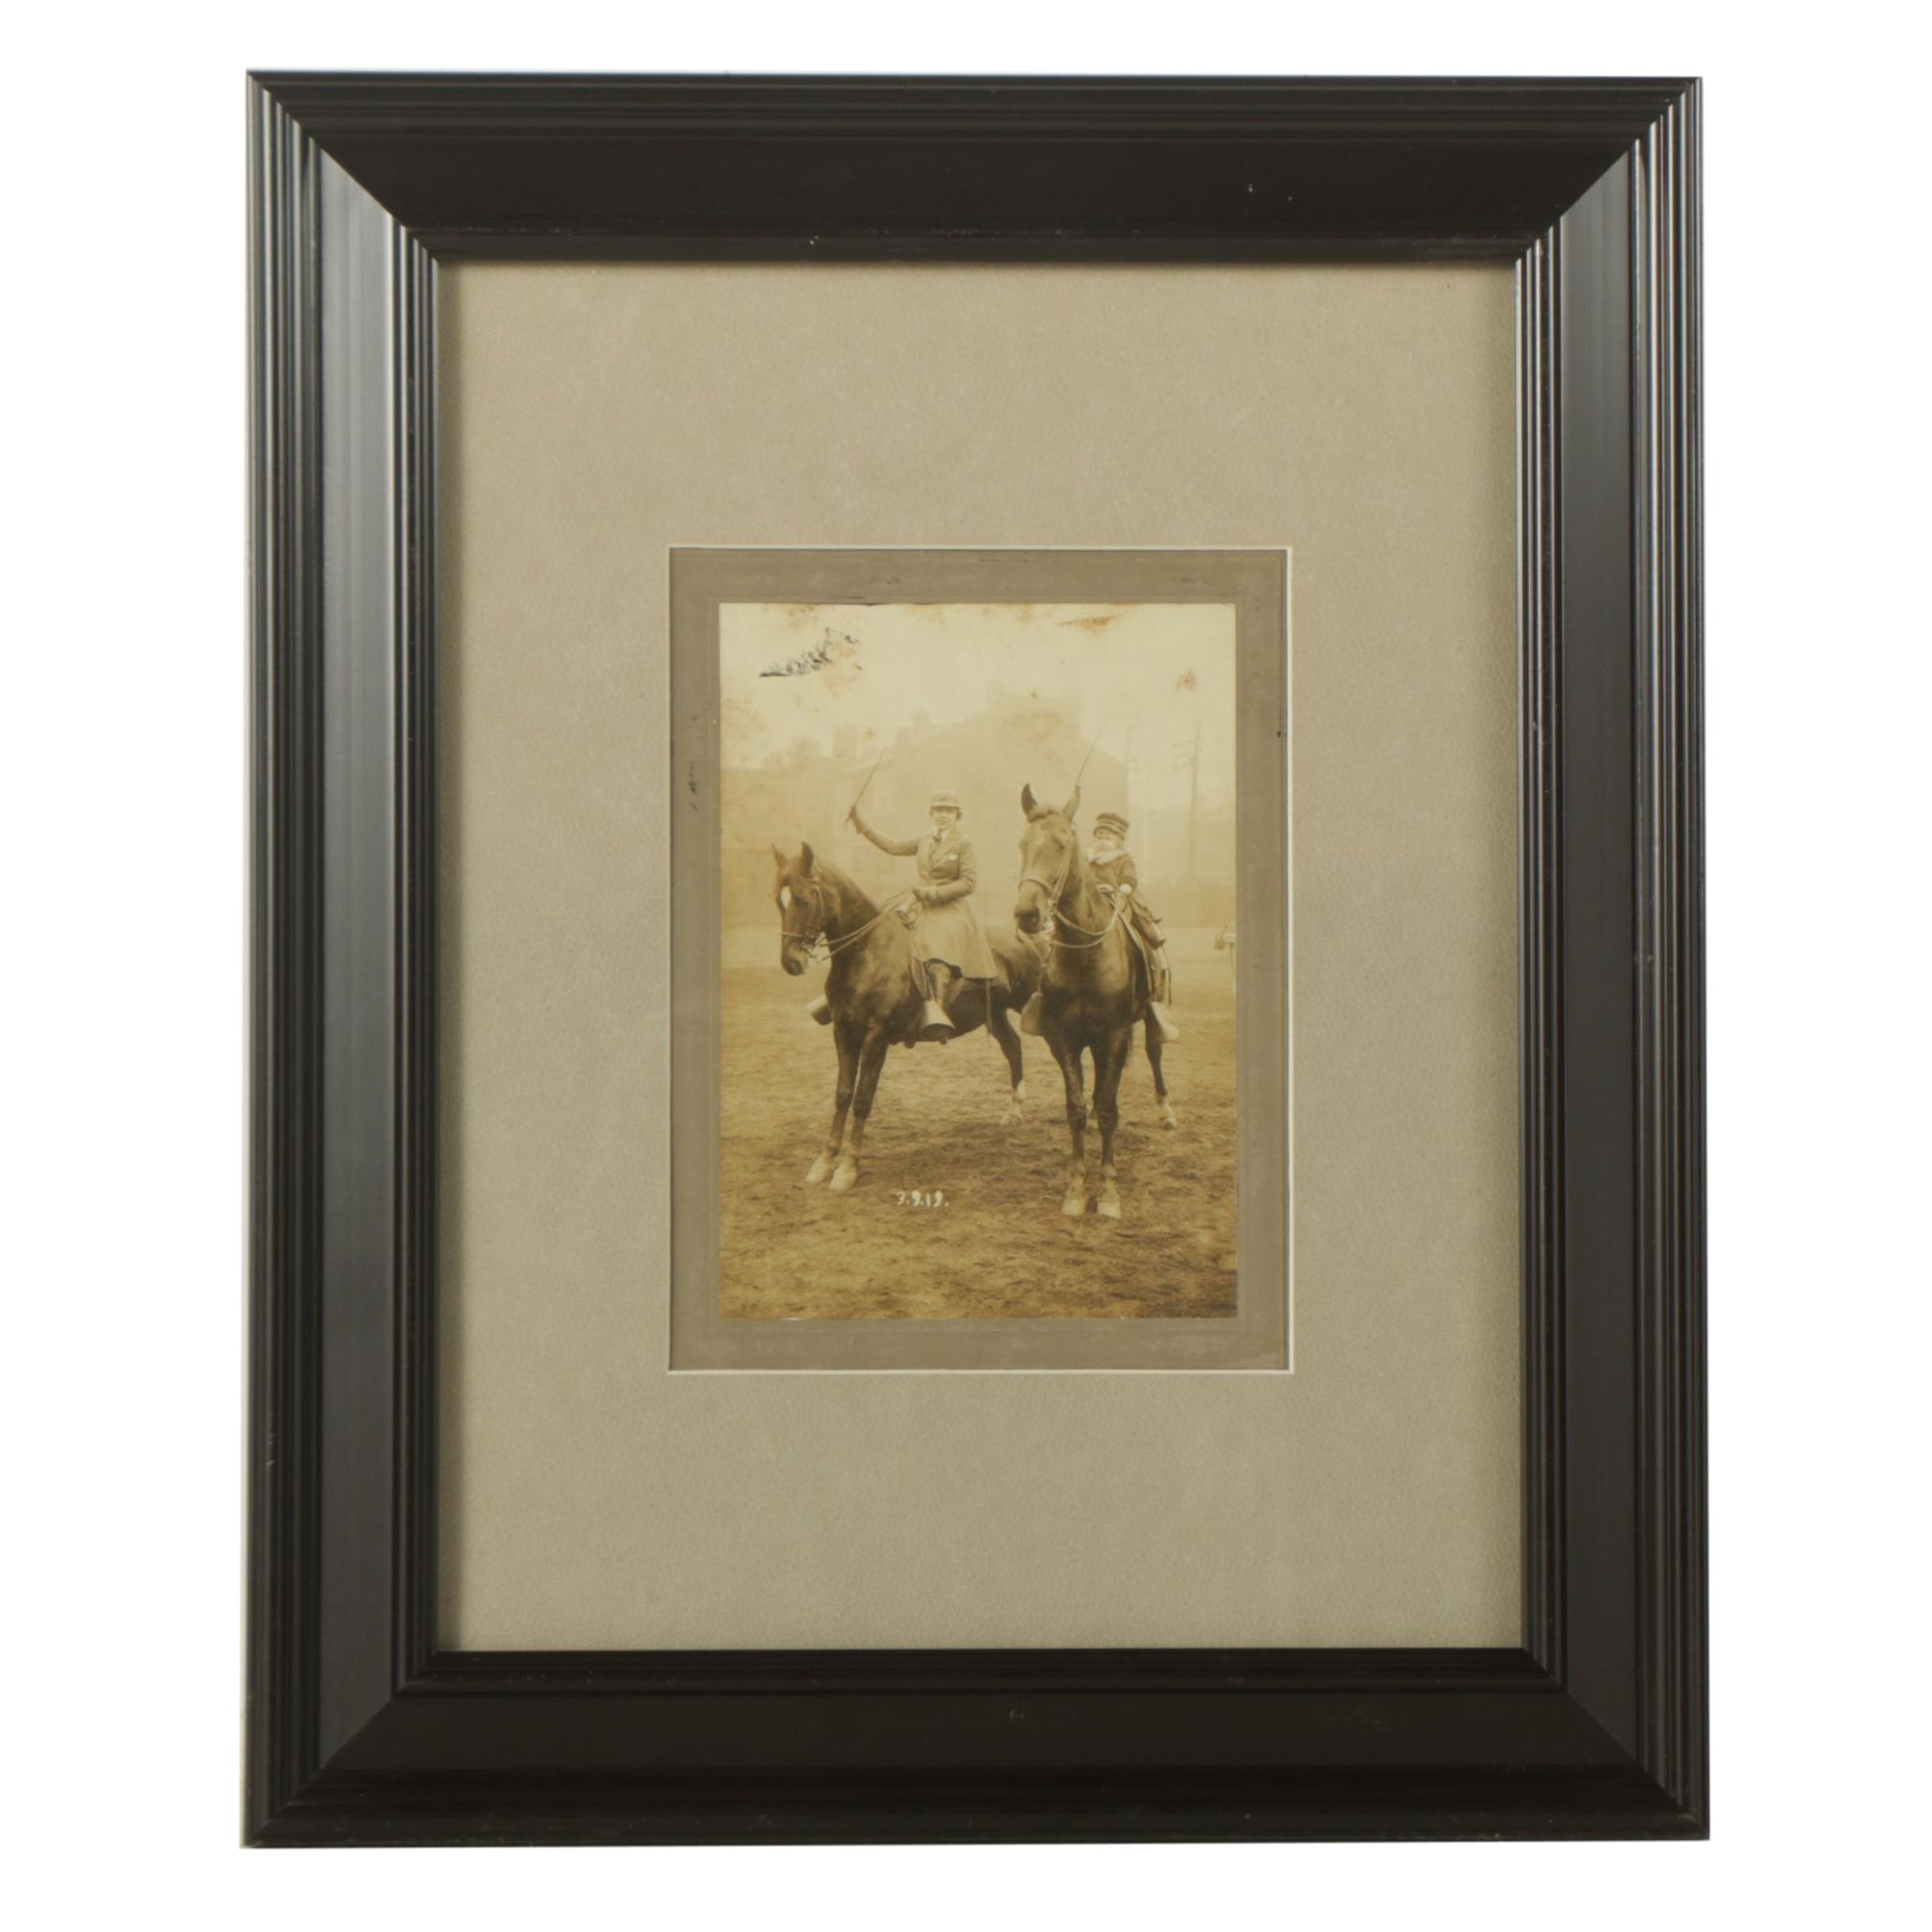 Vintage Photograph of Mother and Daughter on Horseback